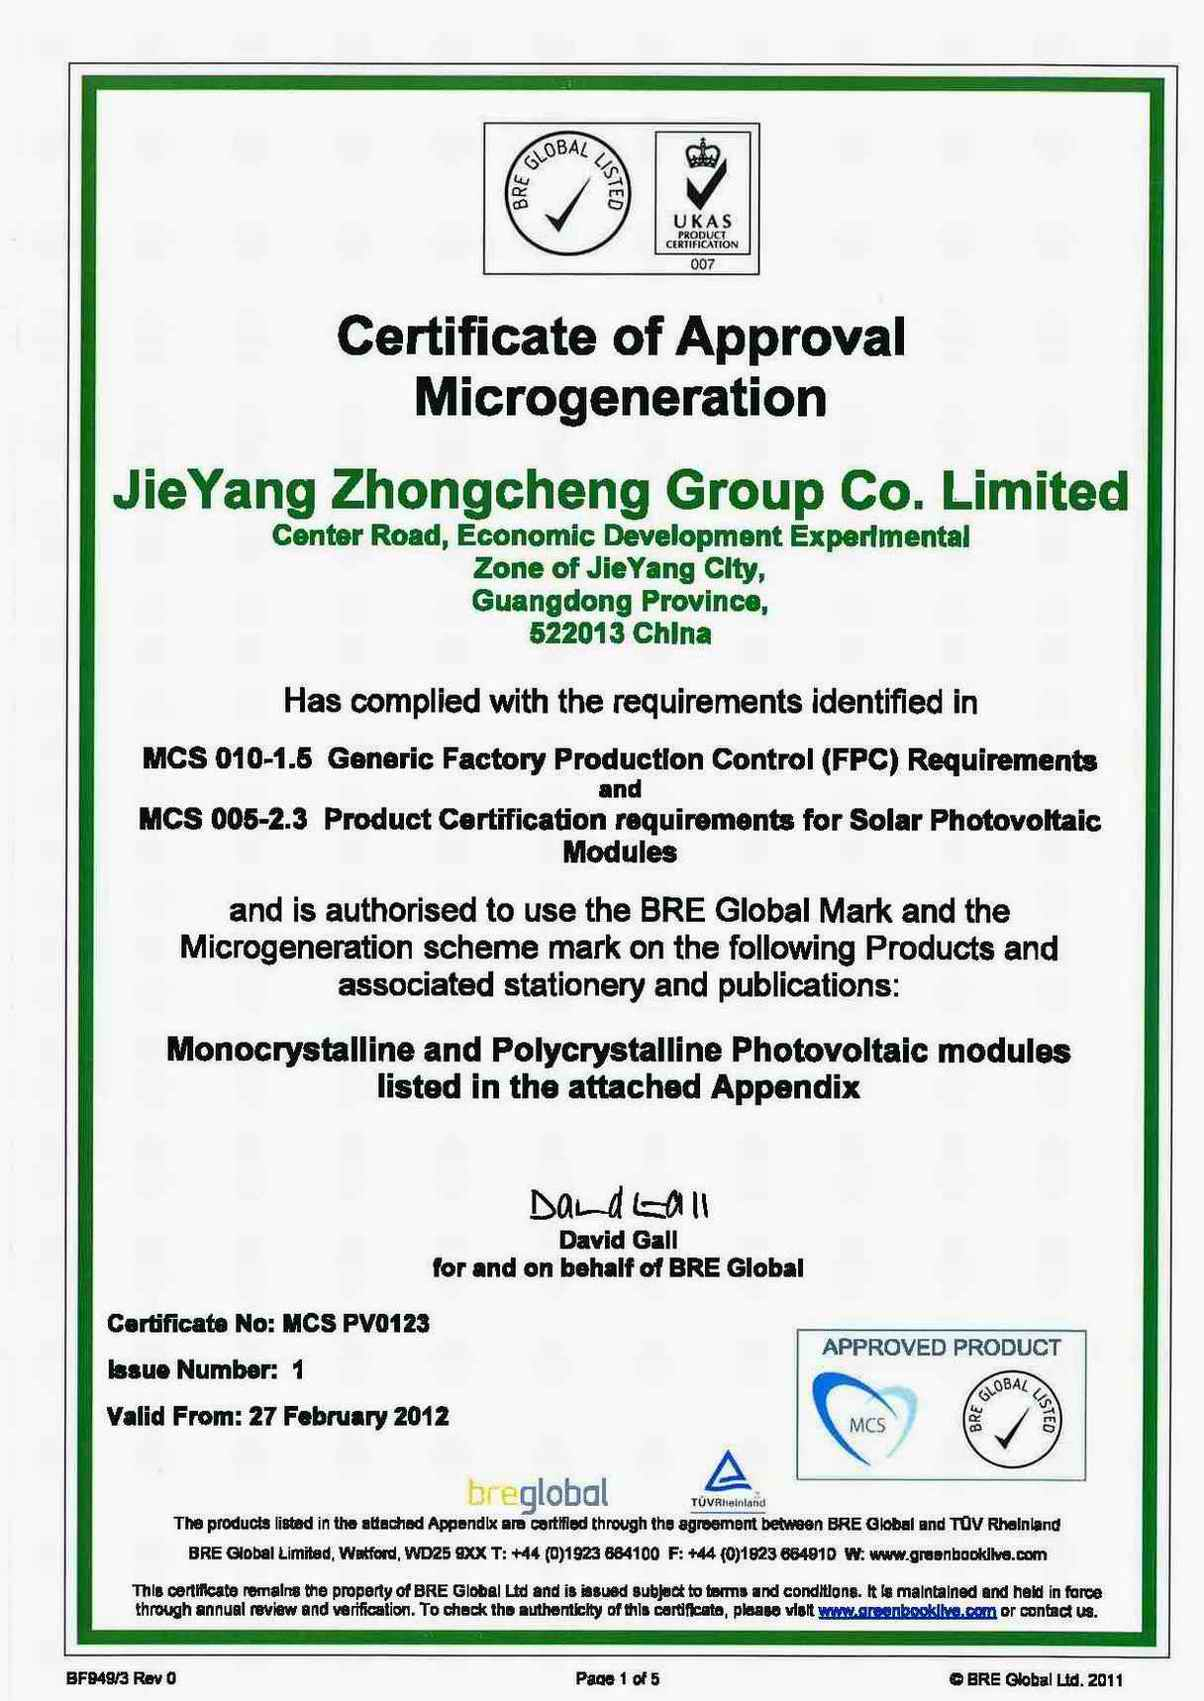 Mcs certificate for pv module jieyang zhongcheng group co ltd